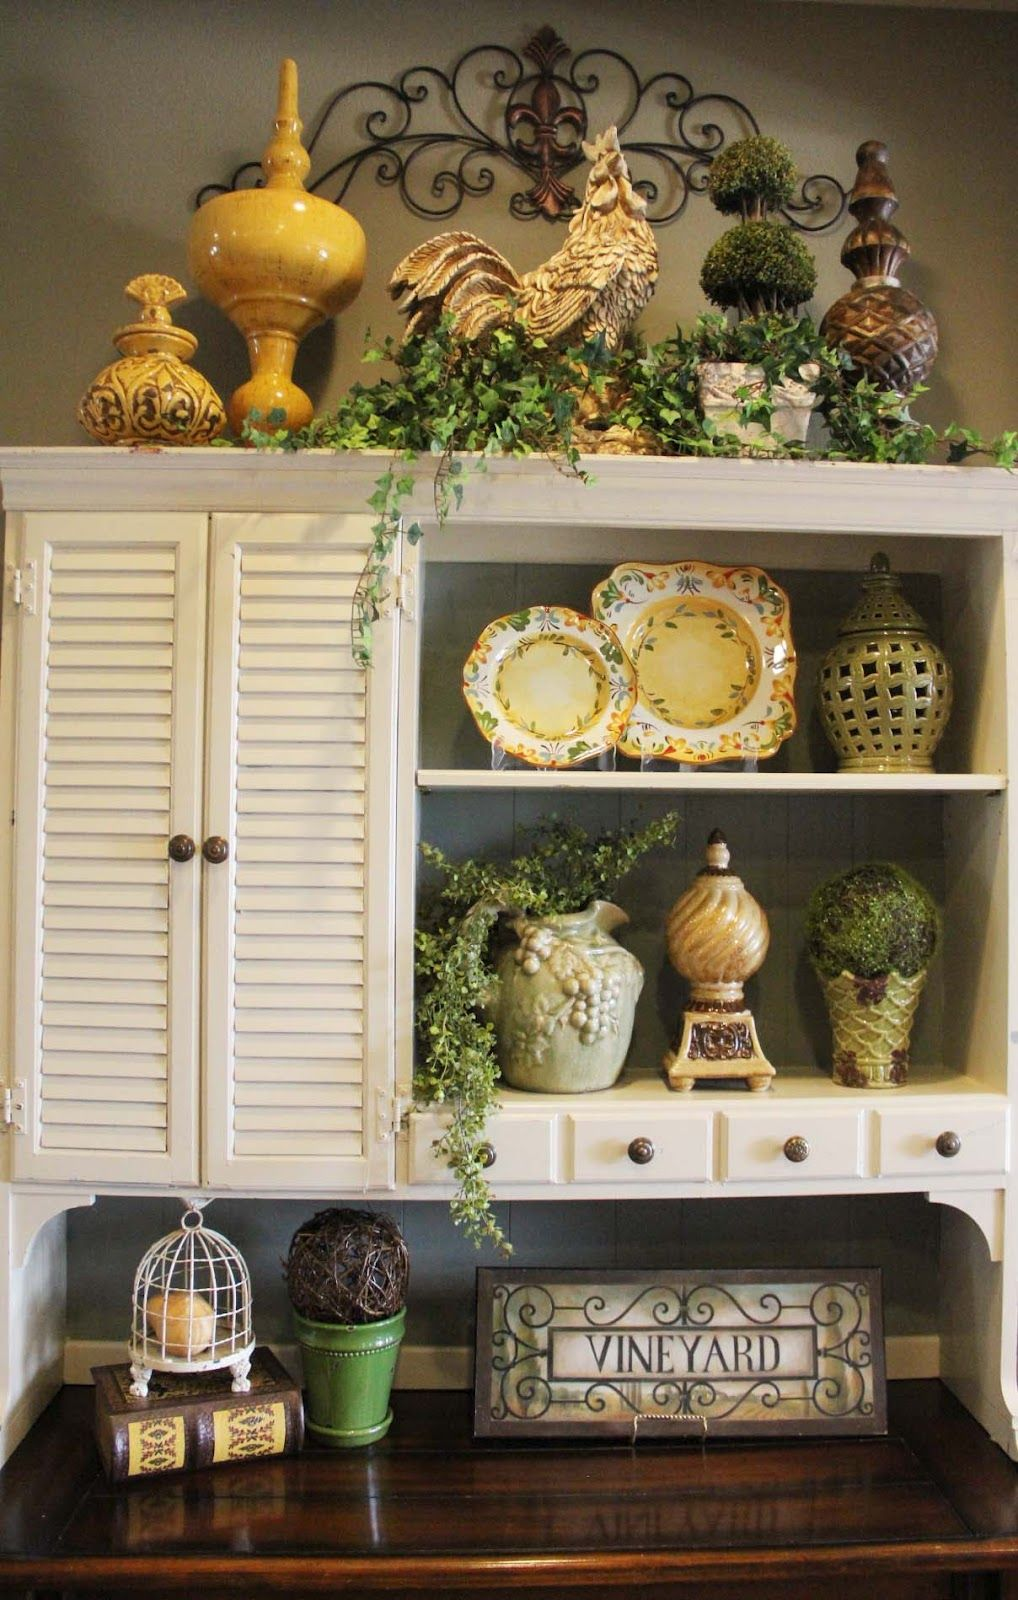 Above Cabinet Decor Greenery Iron Work Placement A